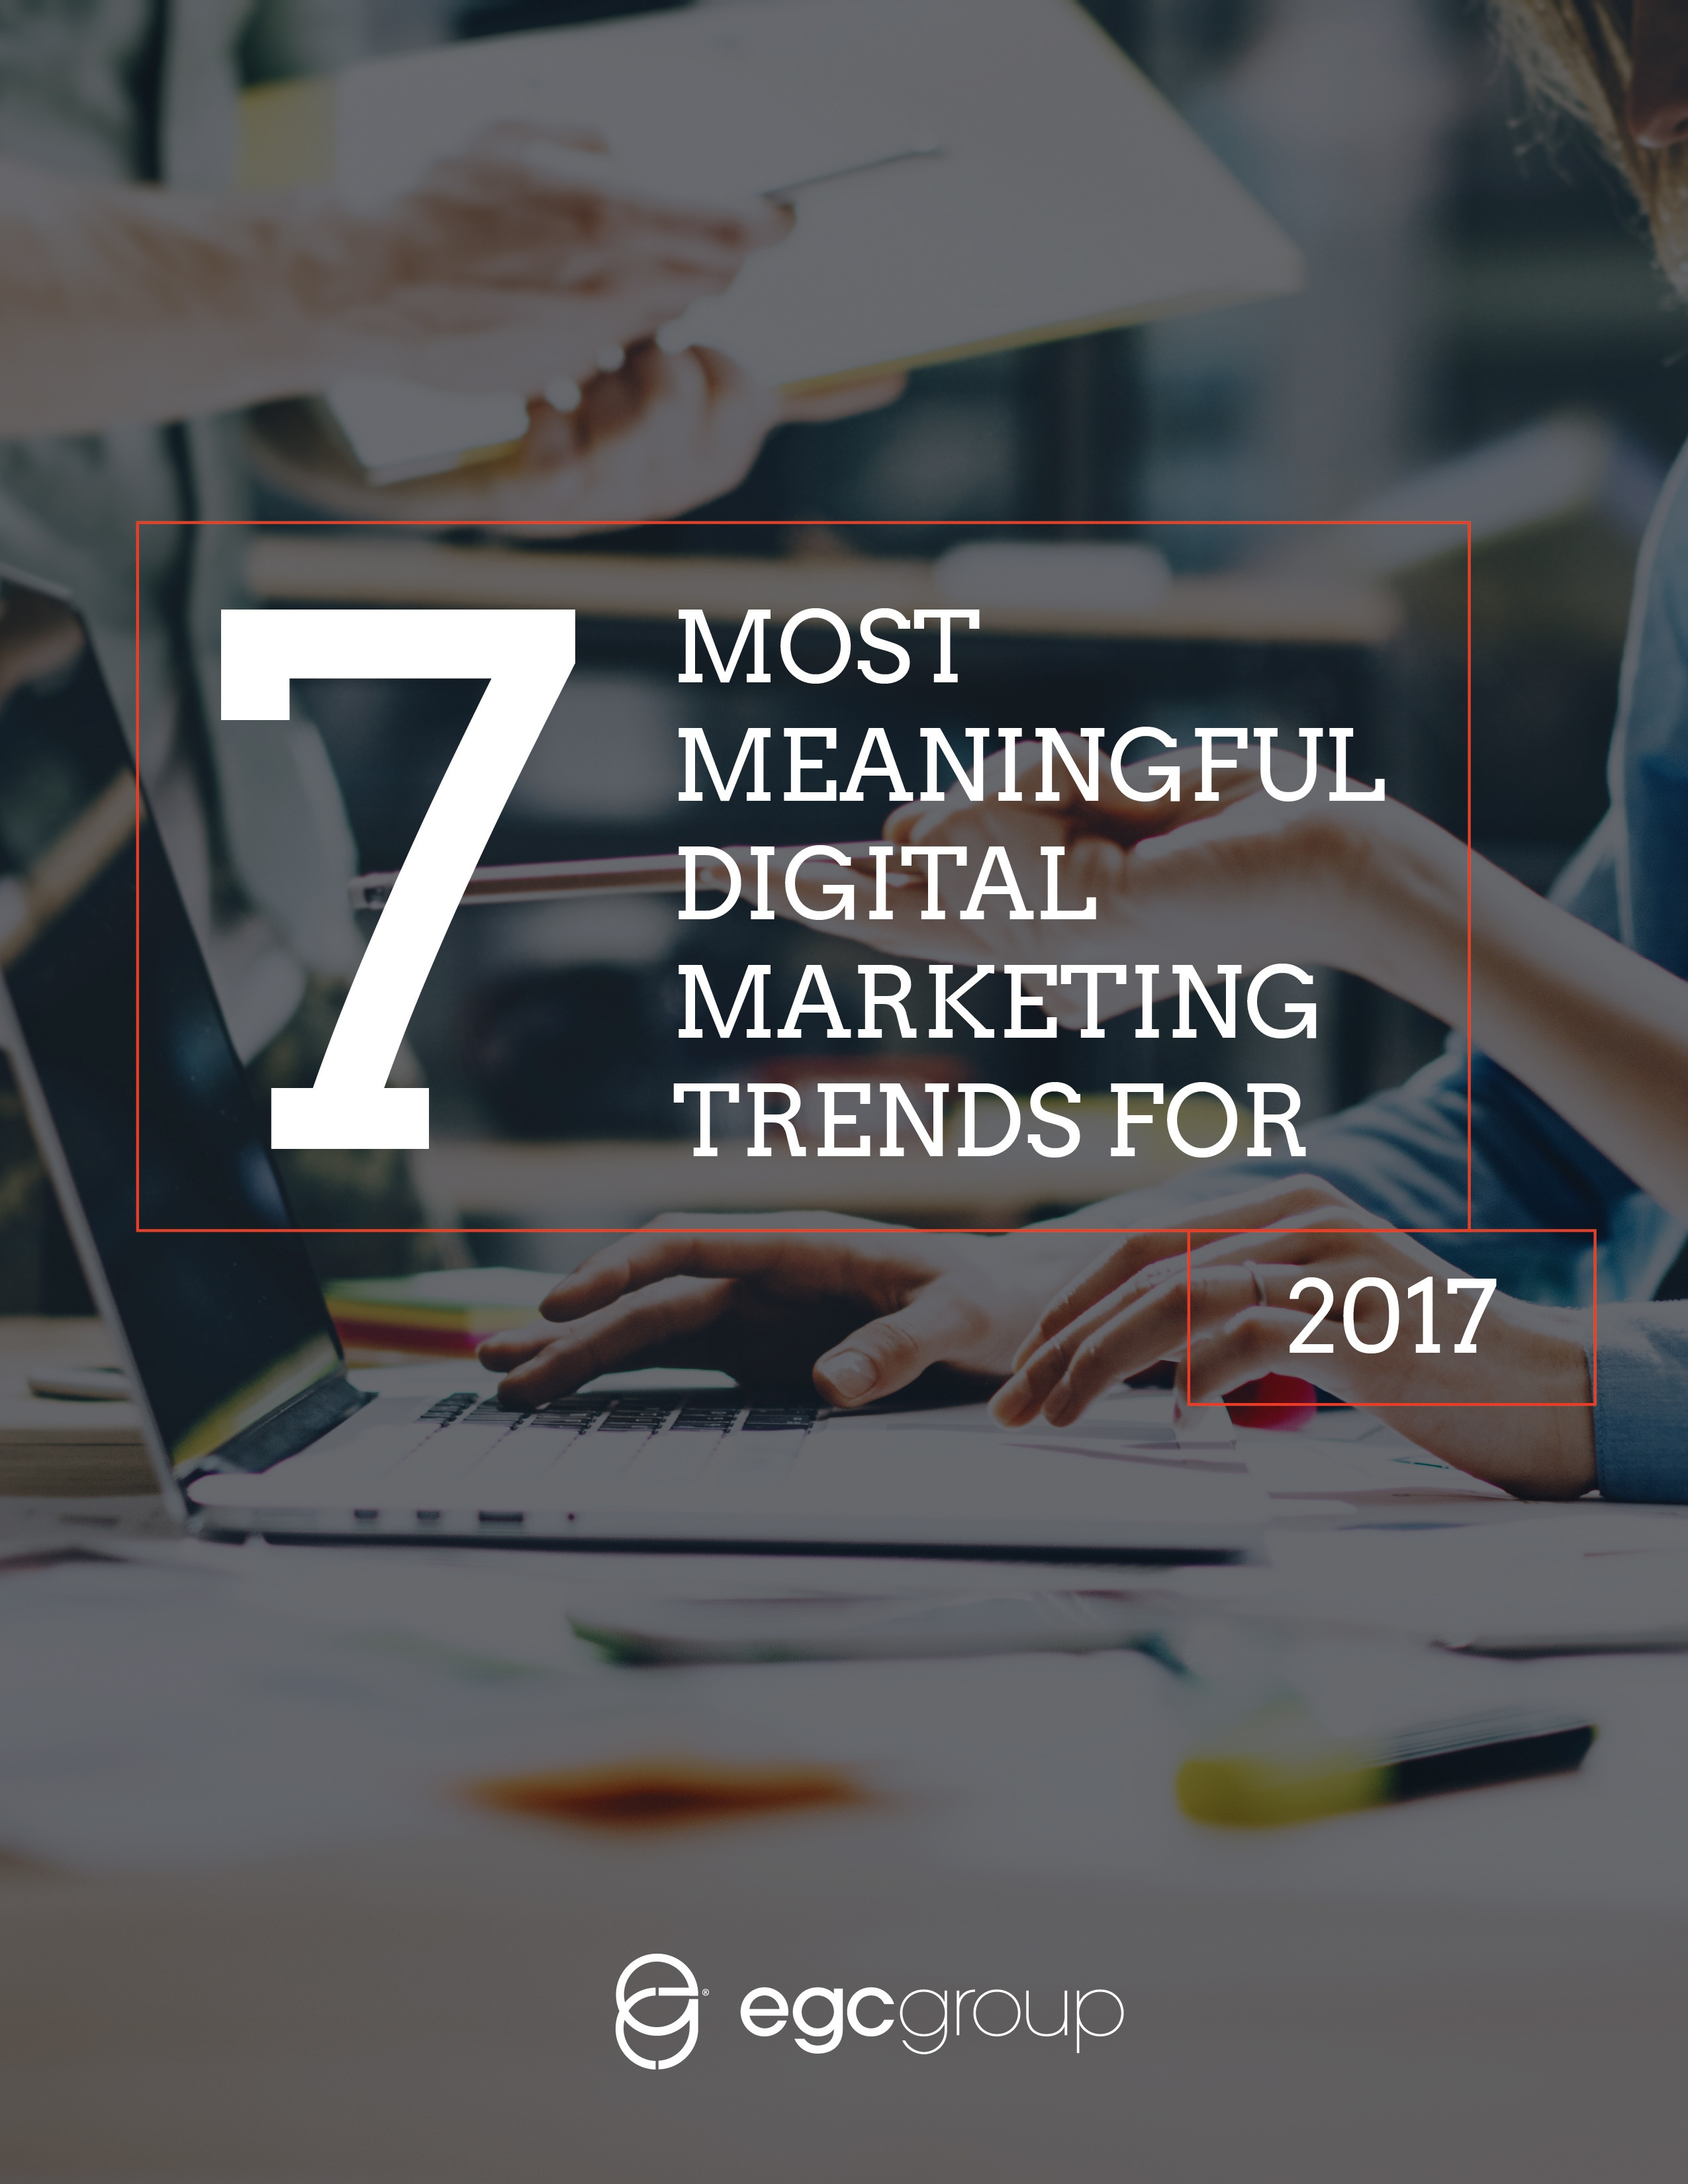 MarketingTrends_ebook guide.jpg